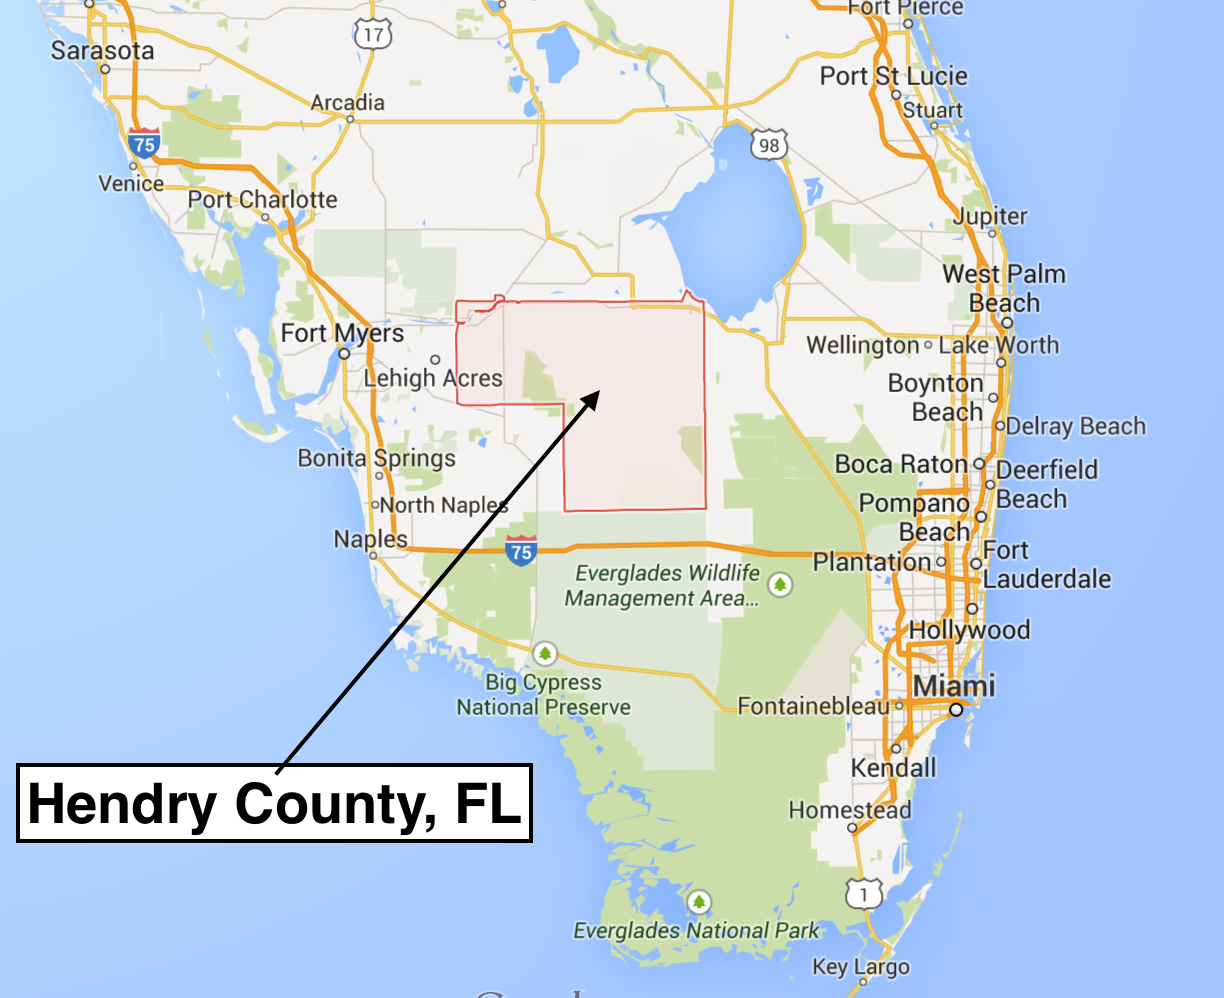 hendry county florida map